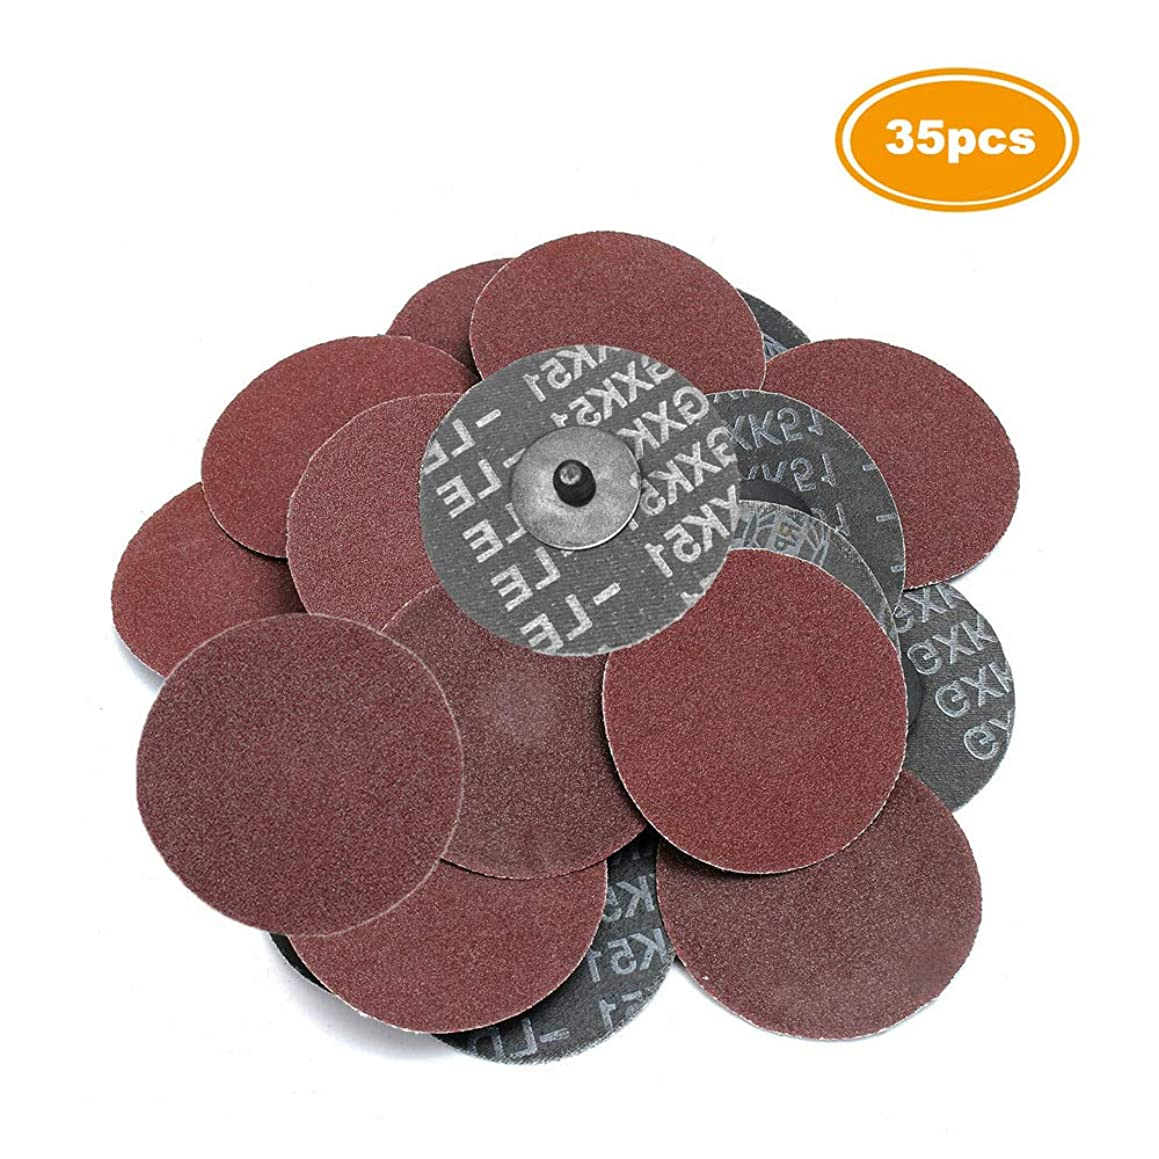 Saiper 35pcs 3 Inch 80 Grit Sanding Discs Roloc Roll Lock Aluminium Oxide Sanding and Grinding Discs for Surface Prep Strip Grind Polish Finish Burr Rust Paint Removal